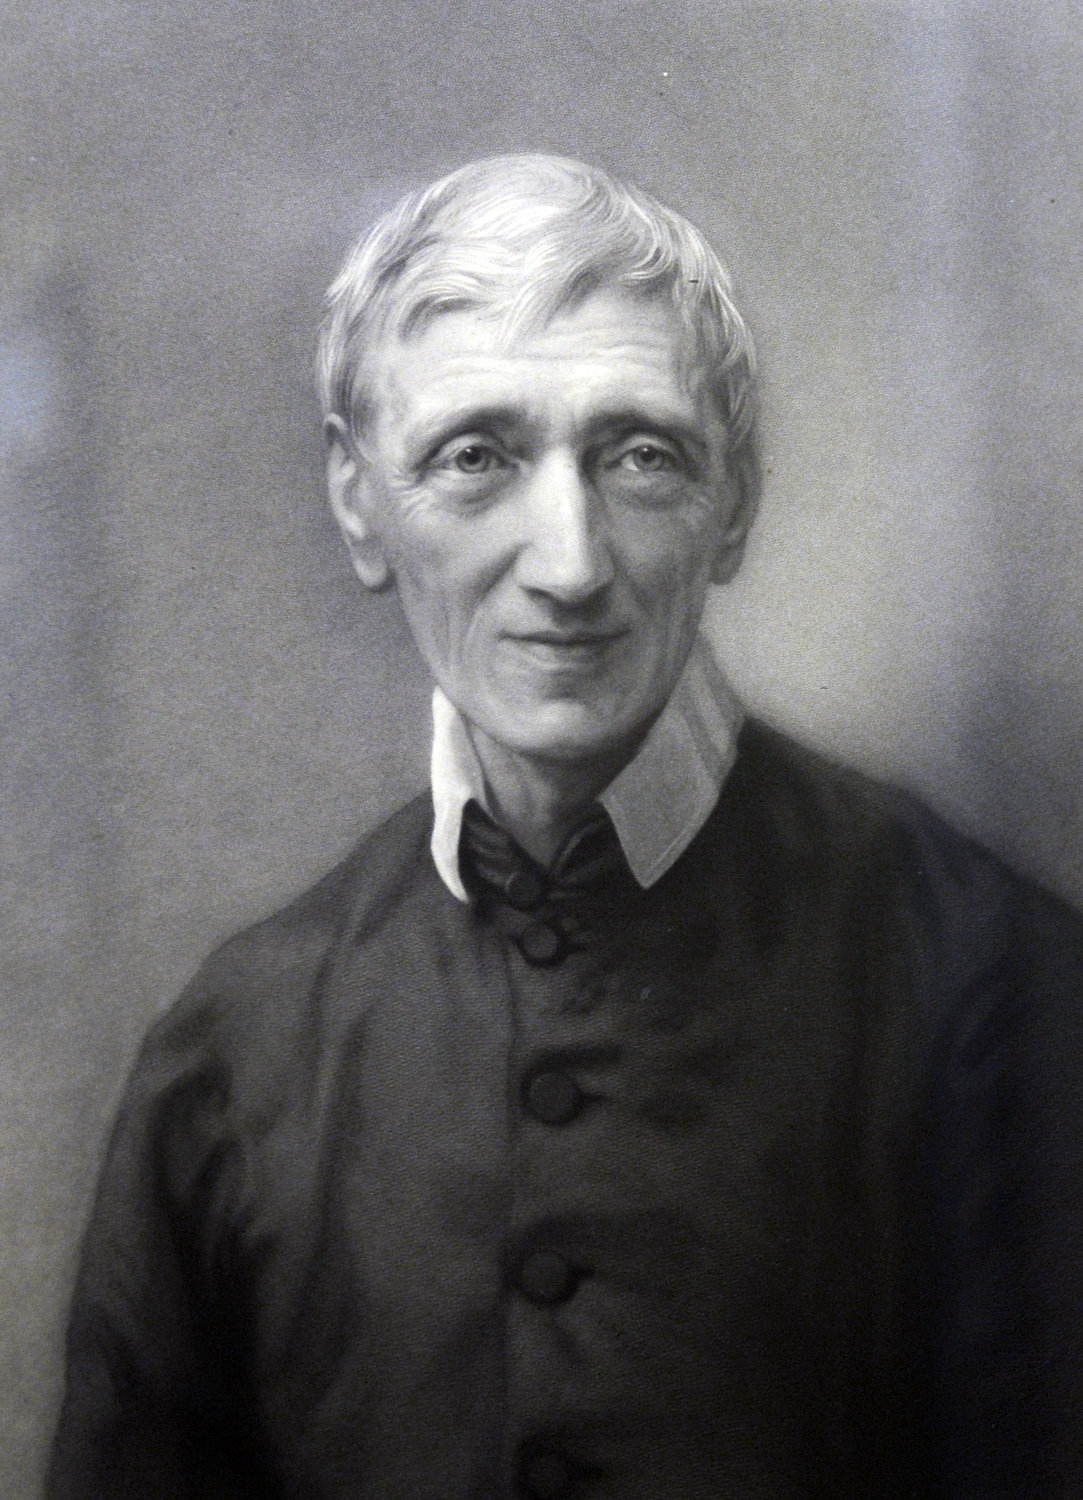 TO BE A SAINT—Blessed John Henry Newman is seen in a portrait provided by the Catholic Church in England and Wales. Pope Francis signed a decree Feb. 12 recognizing a miracle attributed to the intercession of Blessed Newman, the English cardinal, clearing the way for his canonization.